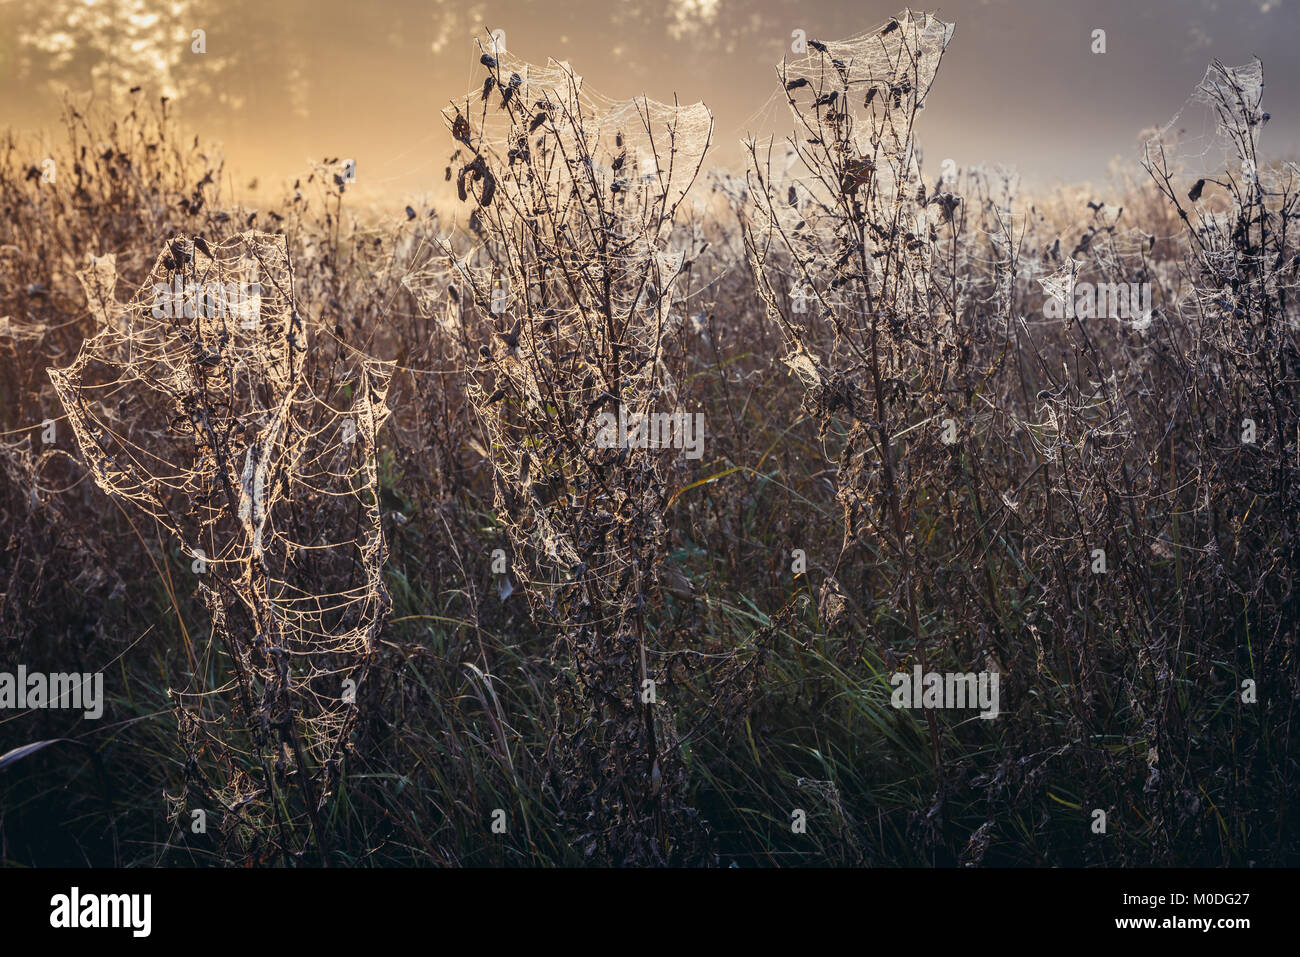 Cobwebbed meadow in Gorki village, Sochaczew County on the edge of Kampinos Forest, large forests complex in Masovian - Stock Image